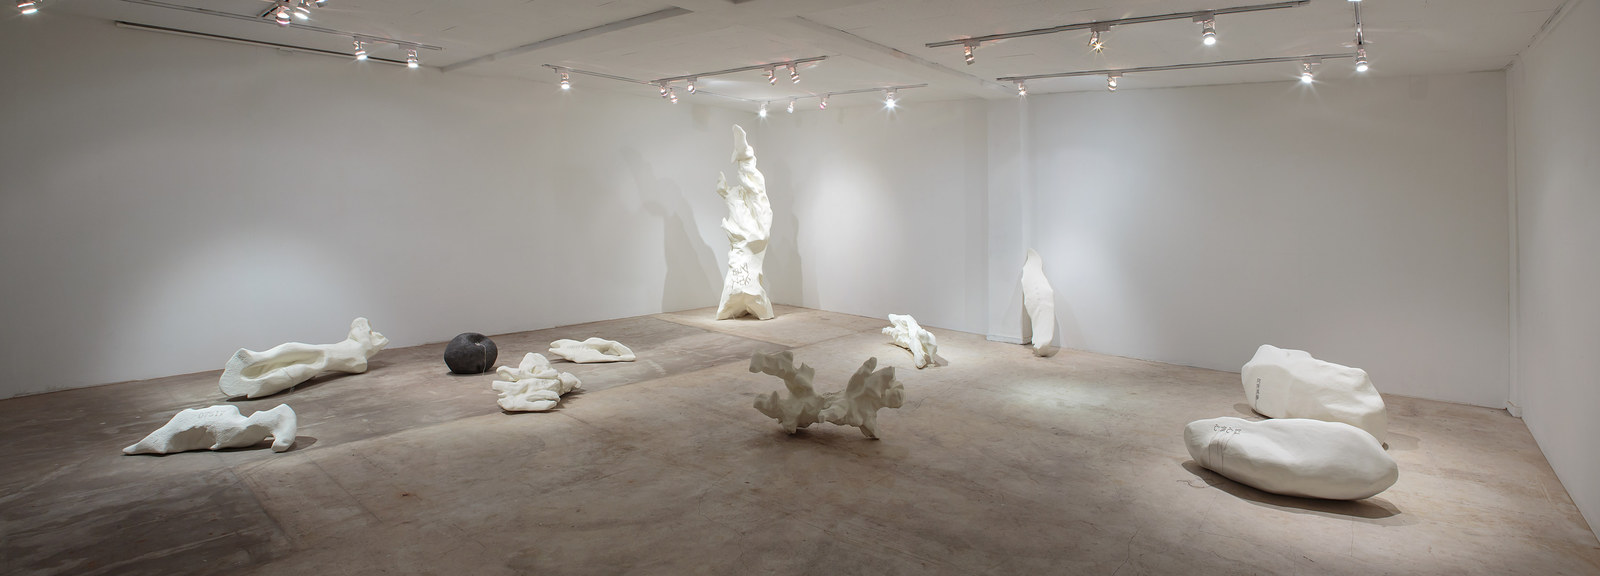 White lump installation view